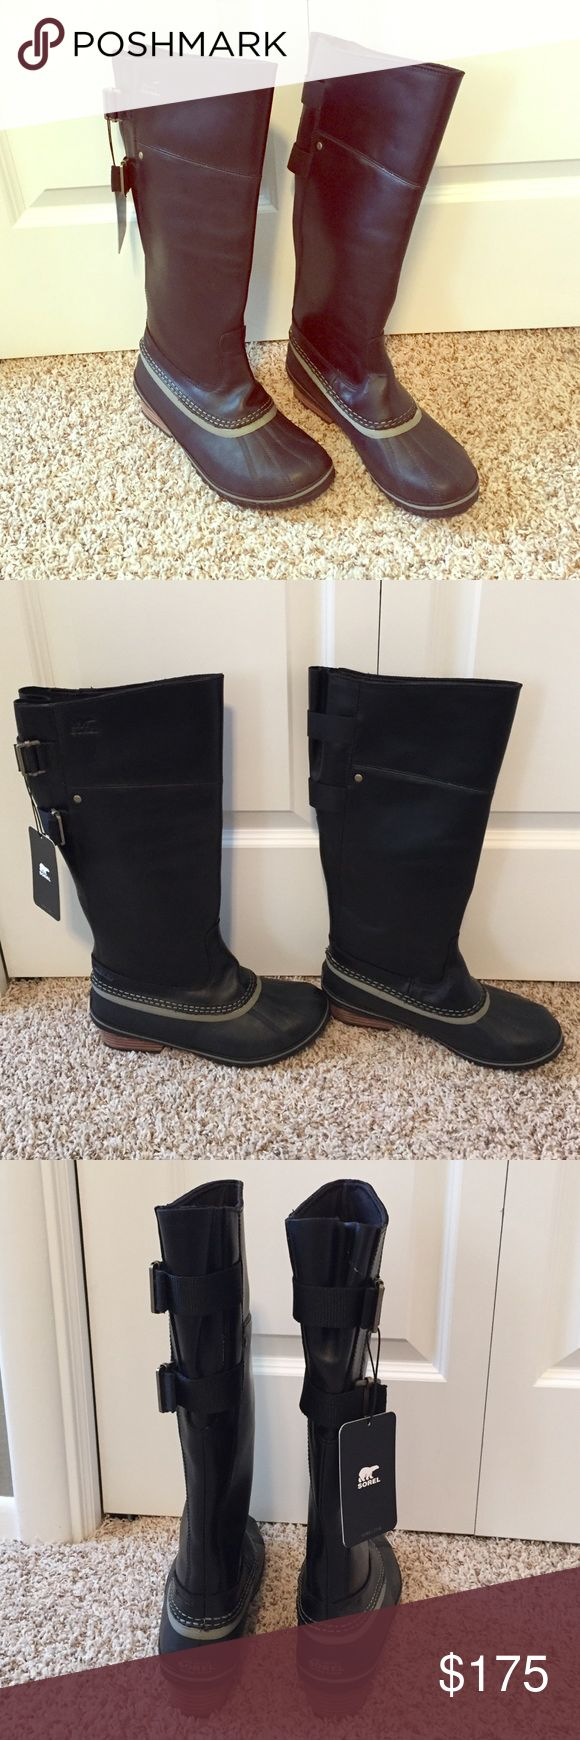 Sorry Slimpack riding tall boots Nwt black Sorel slimpack riding boots. Brand new. Never been worn. Waterproof full grain leather. Very versatile and super cute! Sorel Shoes Winter & Rain Boots